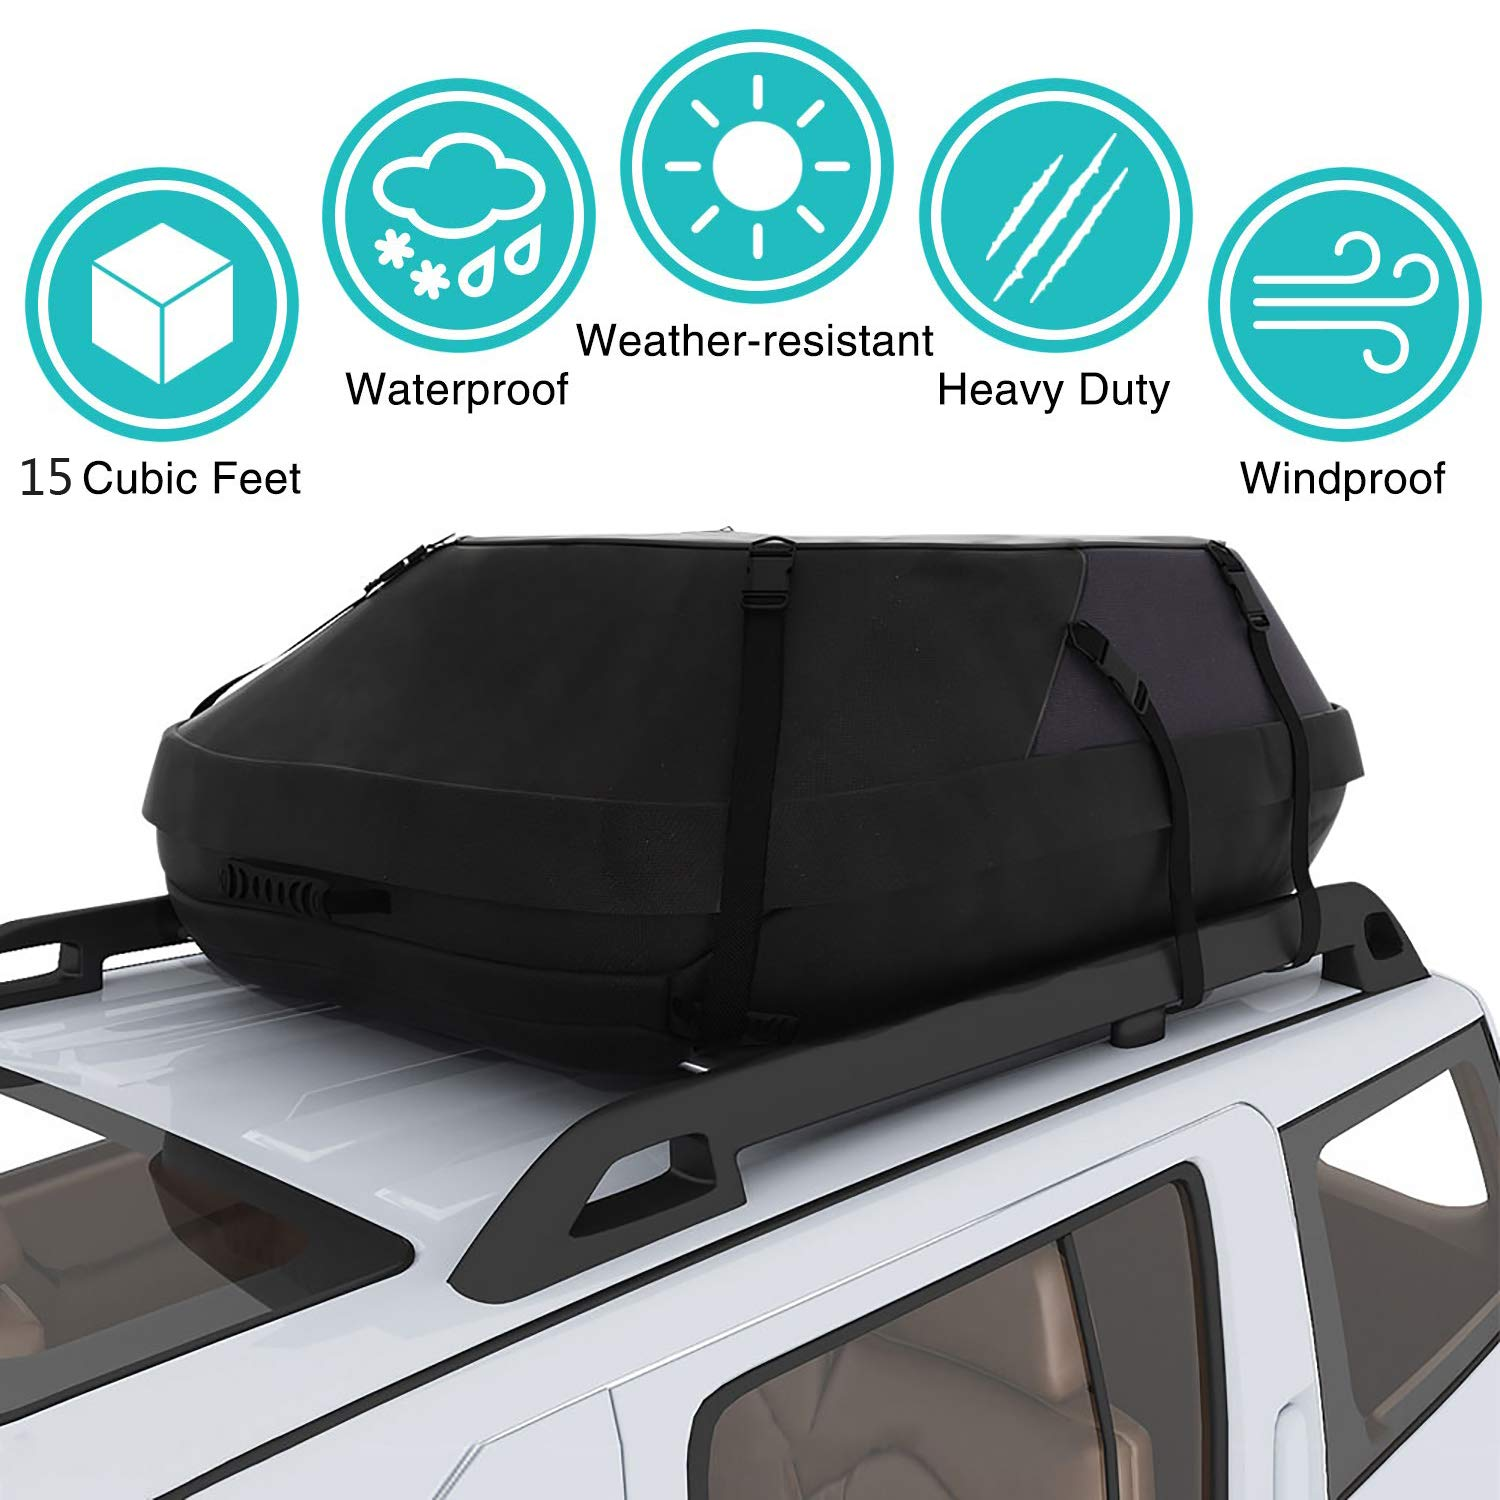 Moroly Car Top Carrier Waterproof Rooftop Cargo Carrier Bag Includes Heavy Duty Straps for Vehicle Car Truck SUV Vans,Travel Cargo Bag Box Storage Luggage (15 Cubic FEET(41'' x 35'' x 17'')) by Moroly